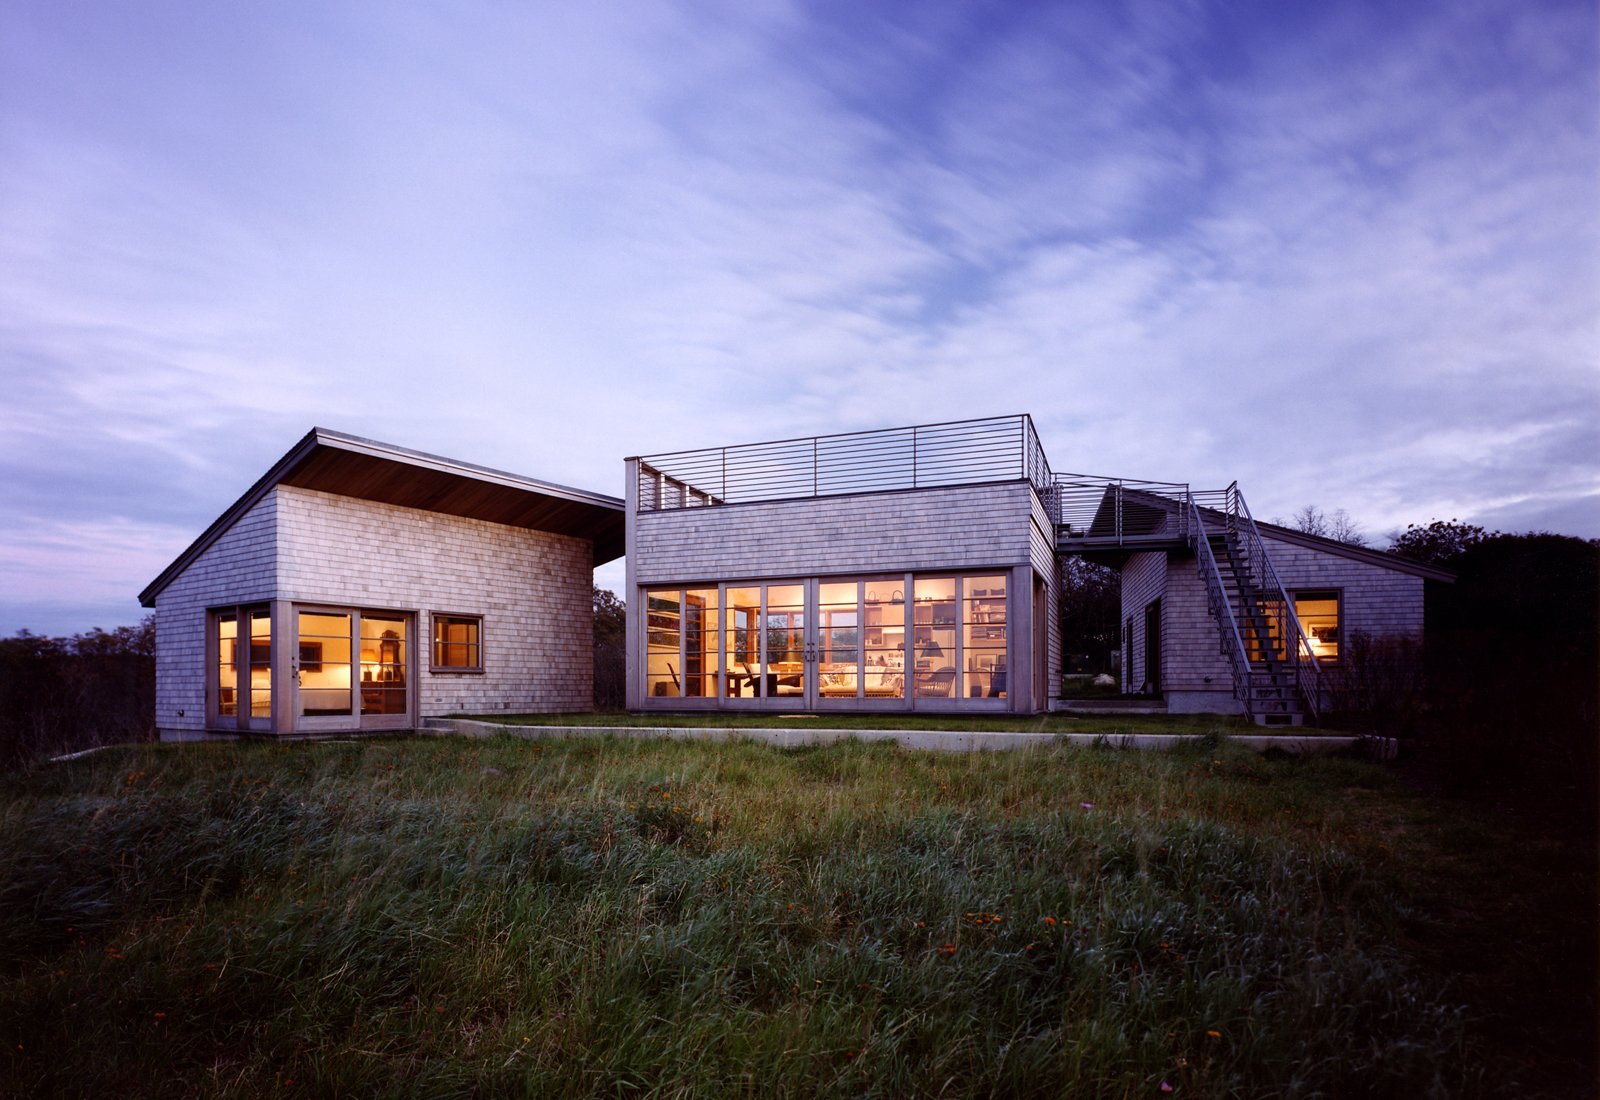 Aquinnah House by Charles Rose Architects